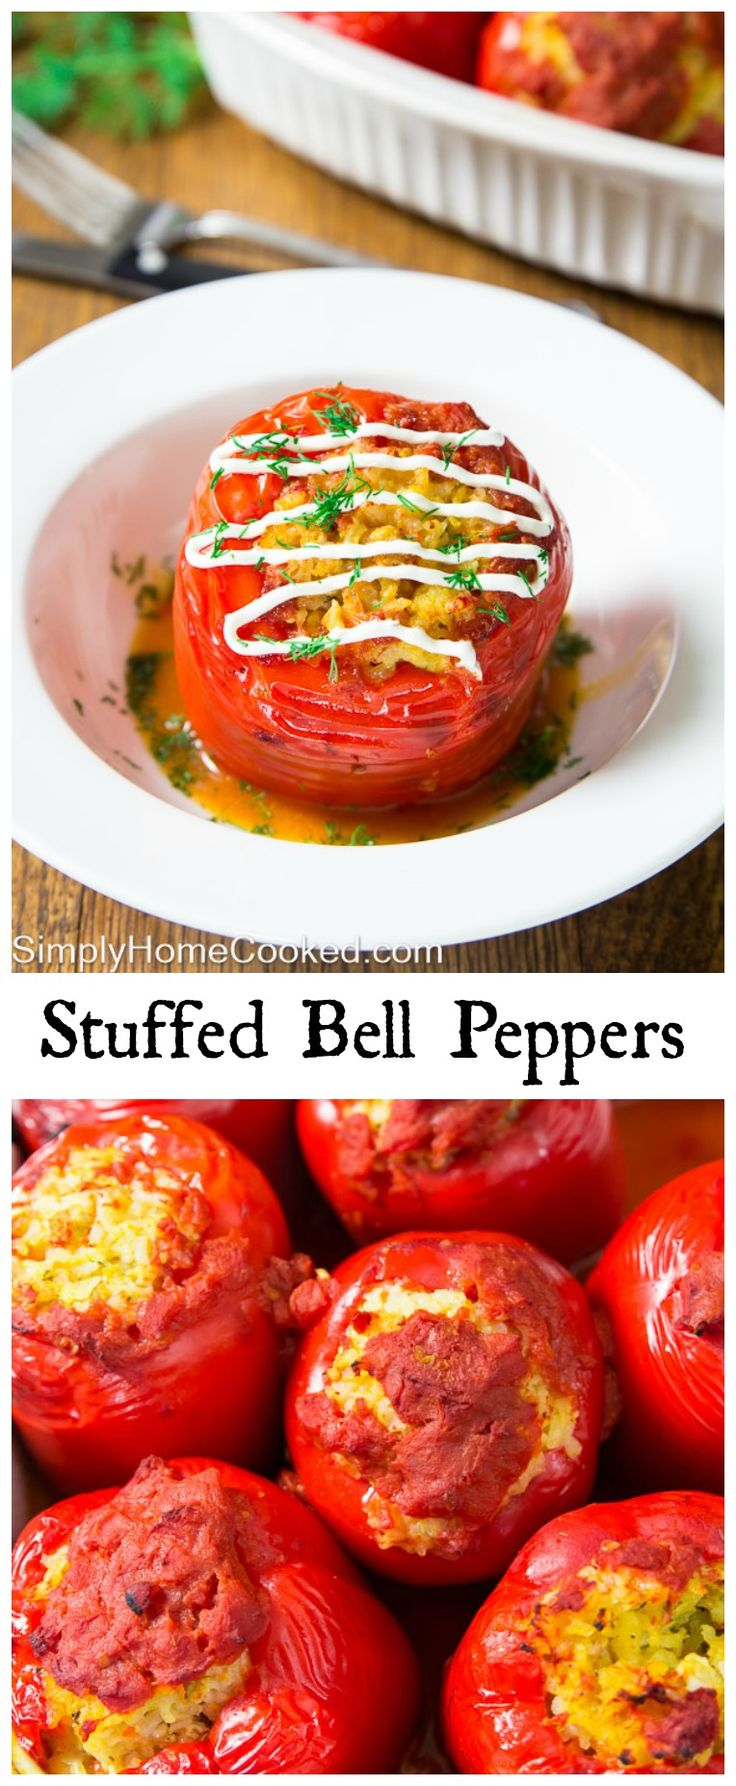 833 best russian food recipes images on pinterest russian foods red bell peppers stuffed with sauteed vegetables rice and ground chicken forumfinder Image collections